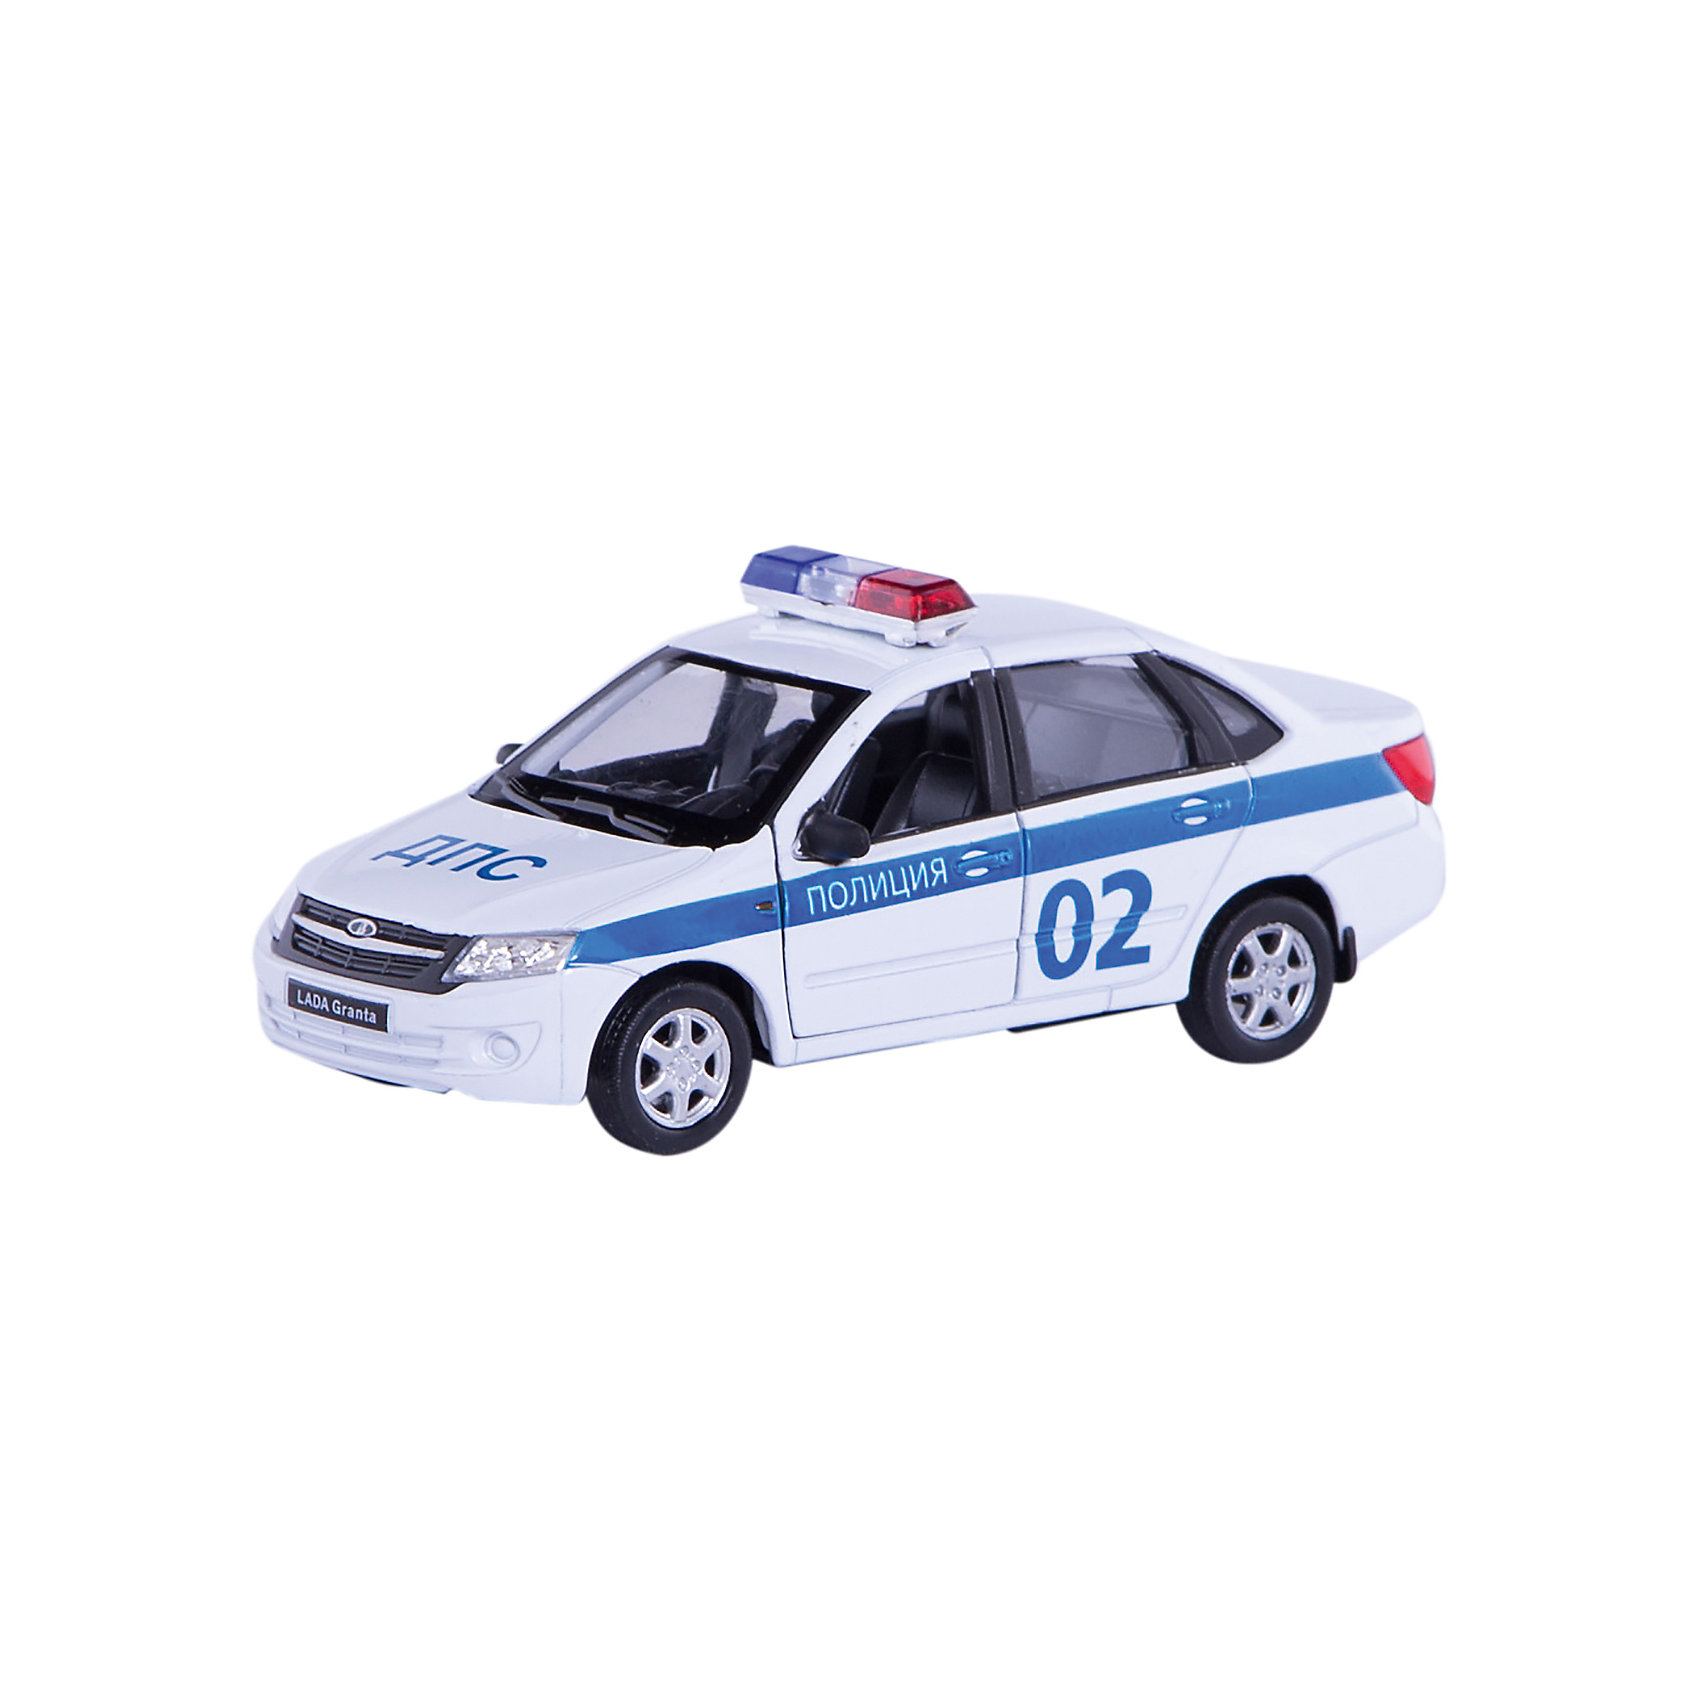 welly vw golf v 1 18 велли welly Welly Модель машины 1:34-39 LADA Granta Полиция, Welly